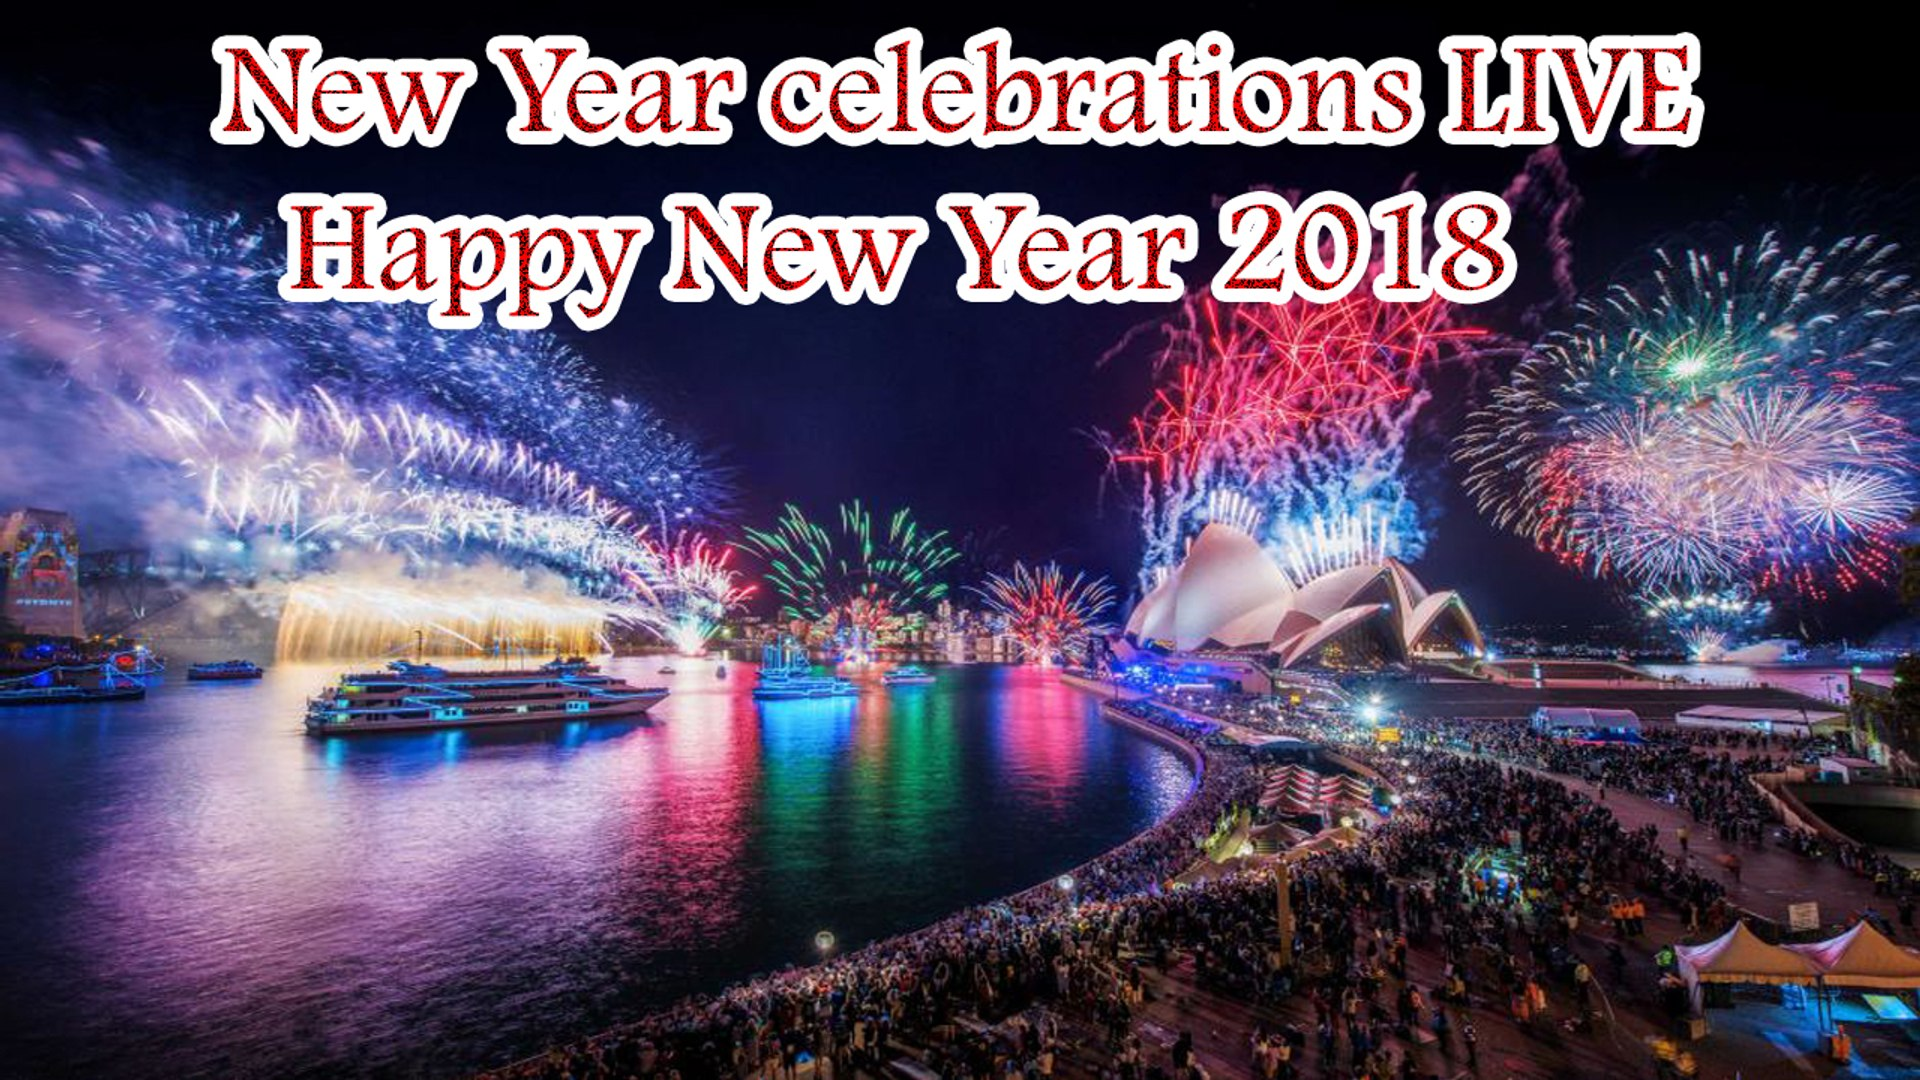 Live Happy New Year Wallpaper